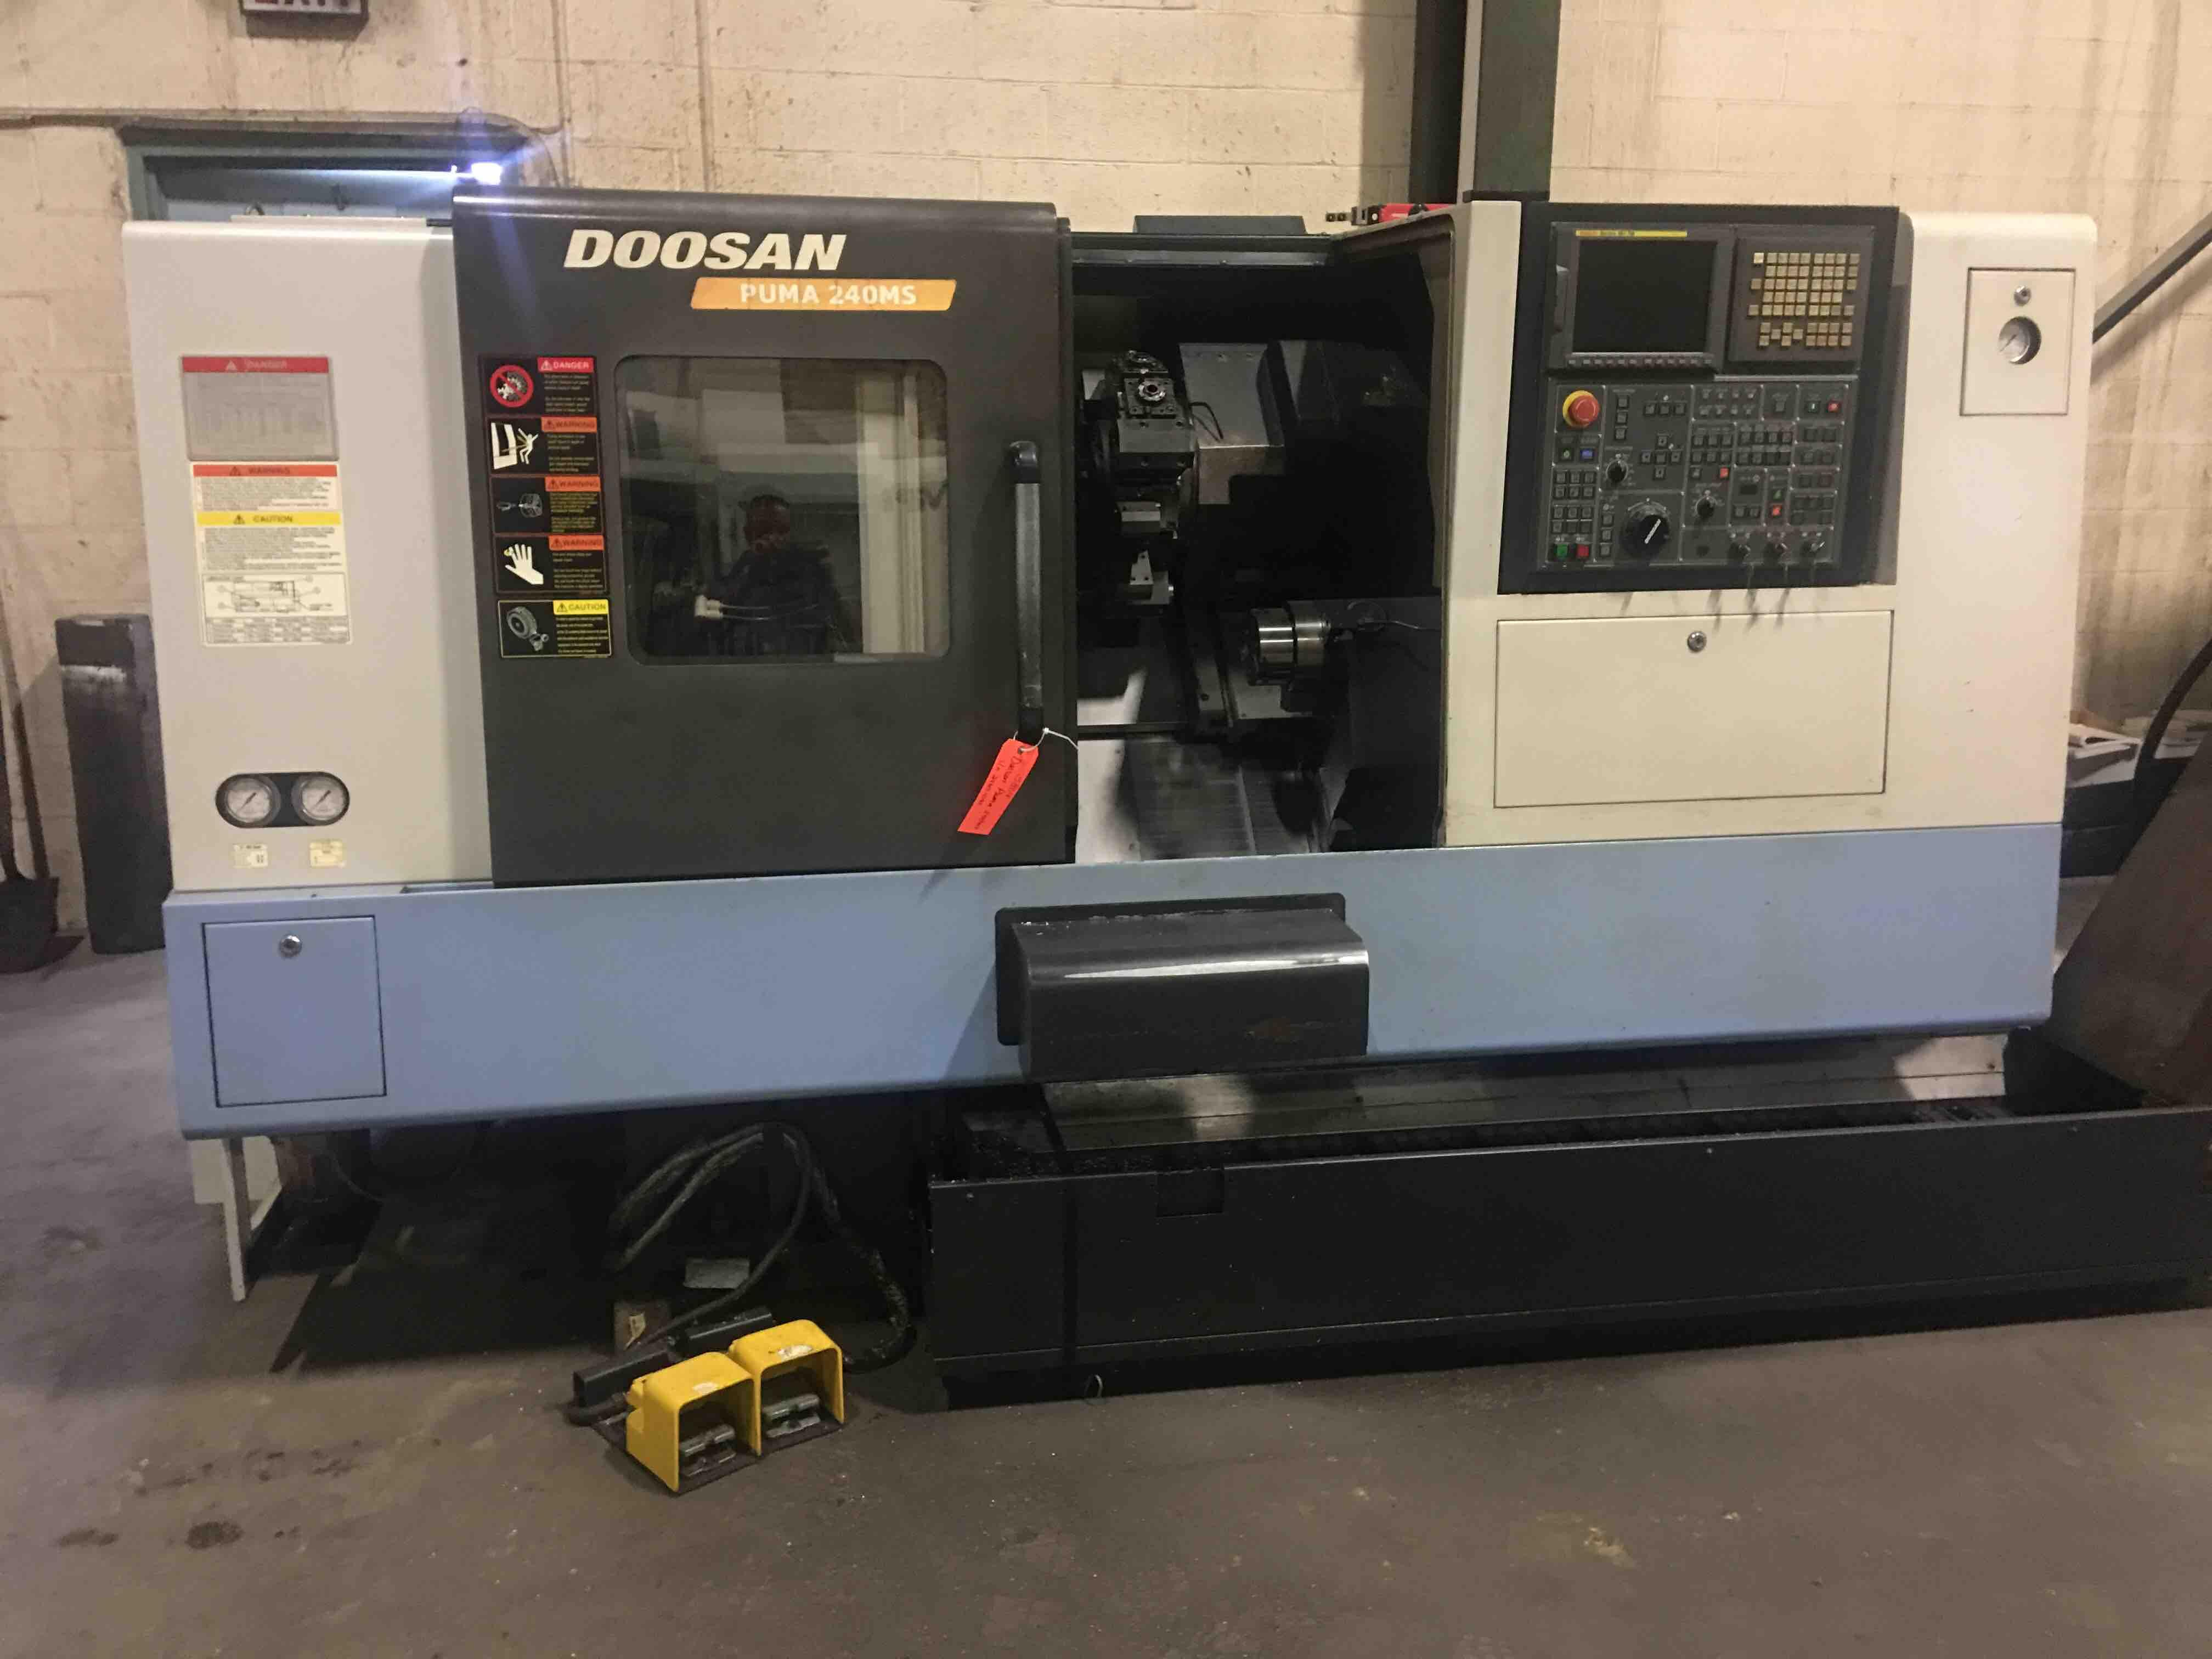 DOOSAN 240MSB - Lathes, CNC (3-Axis or More) | Machine Hub